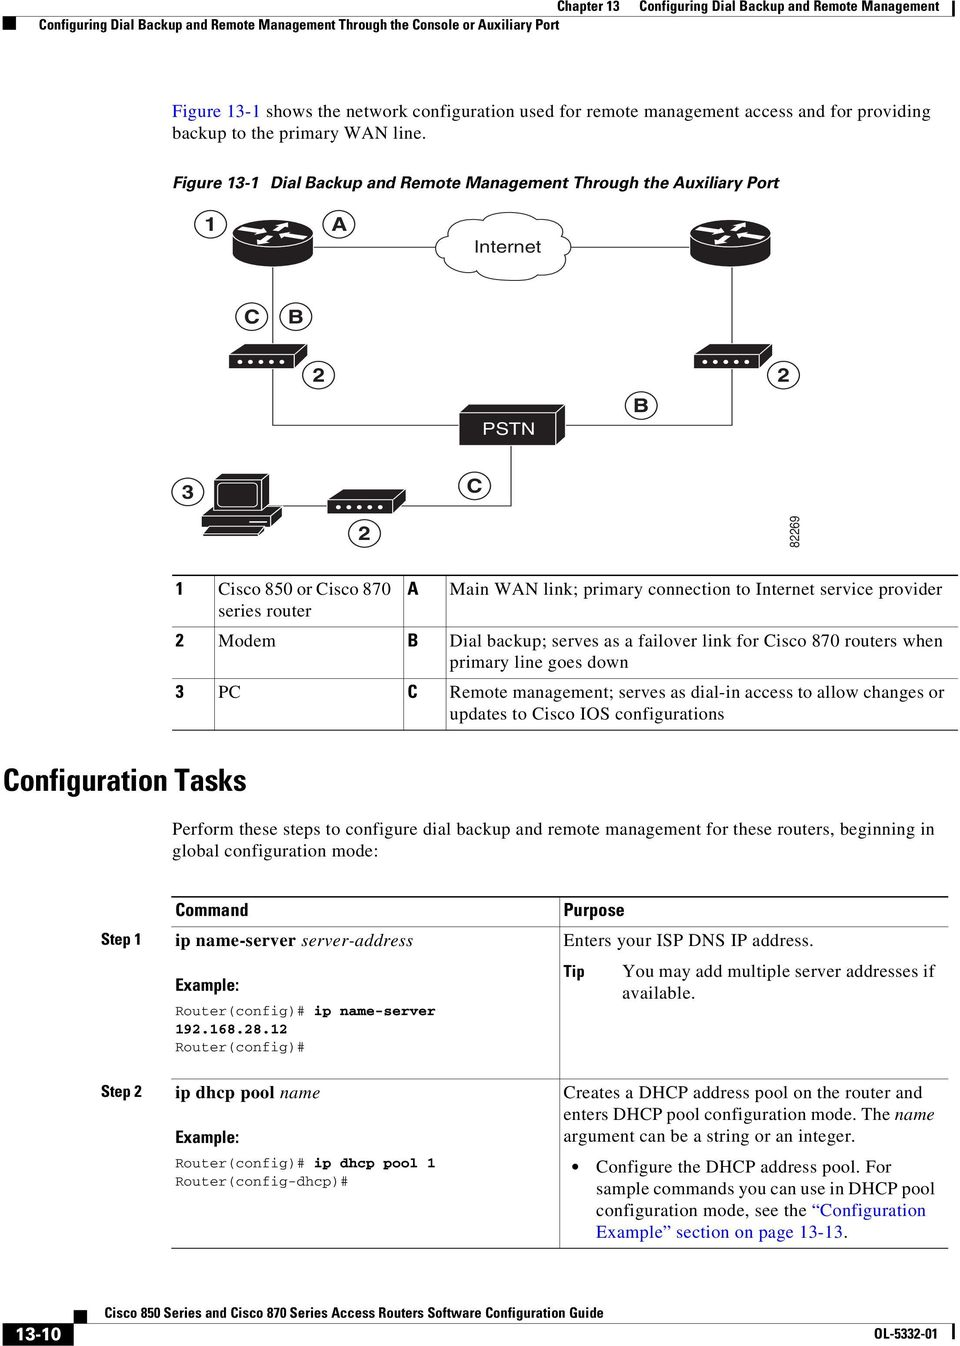 Configuring Dial Backup and Remote Management - PDF